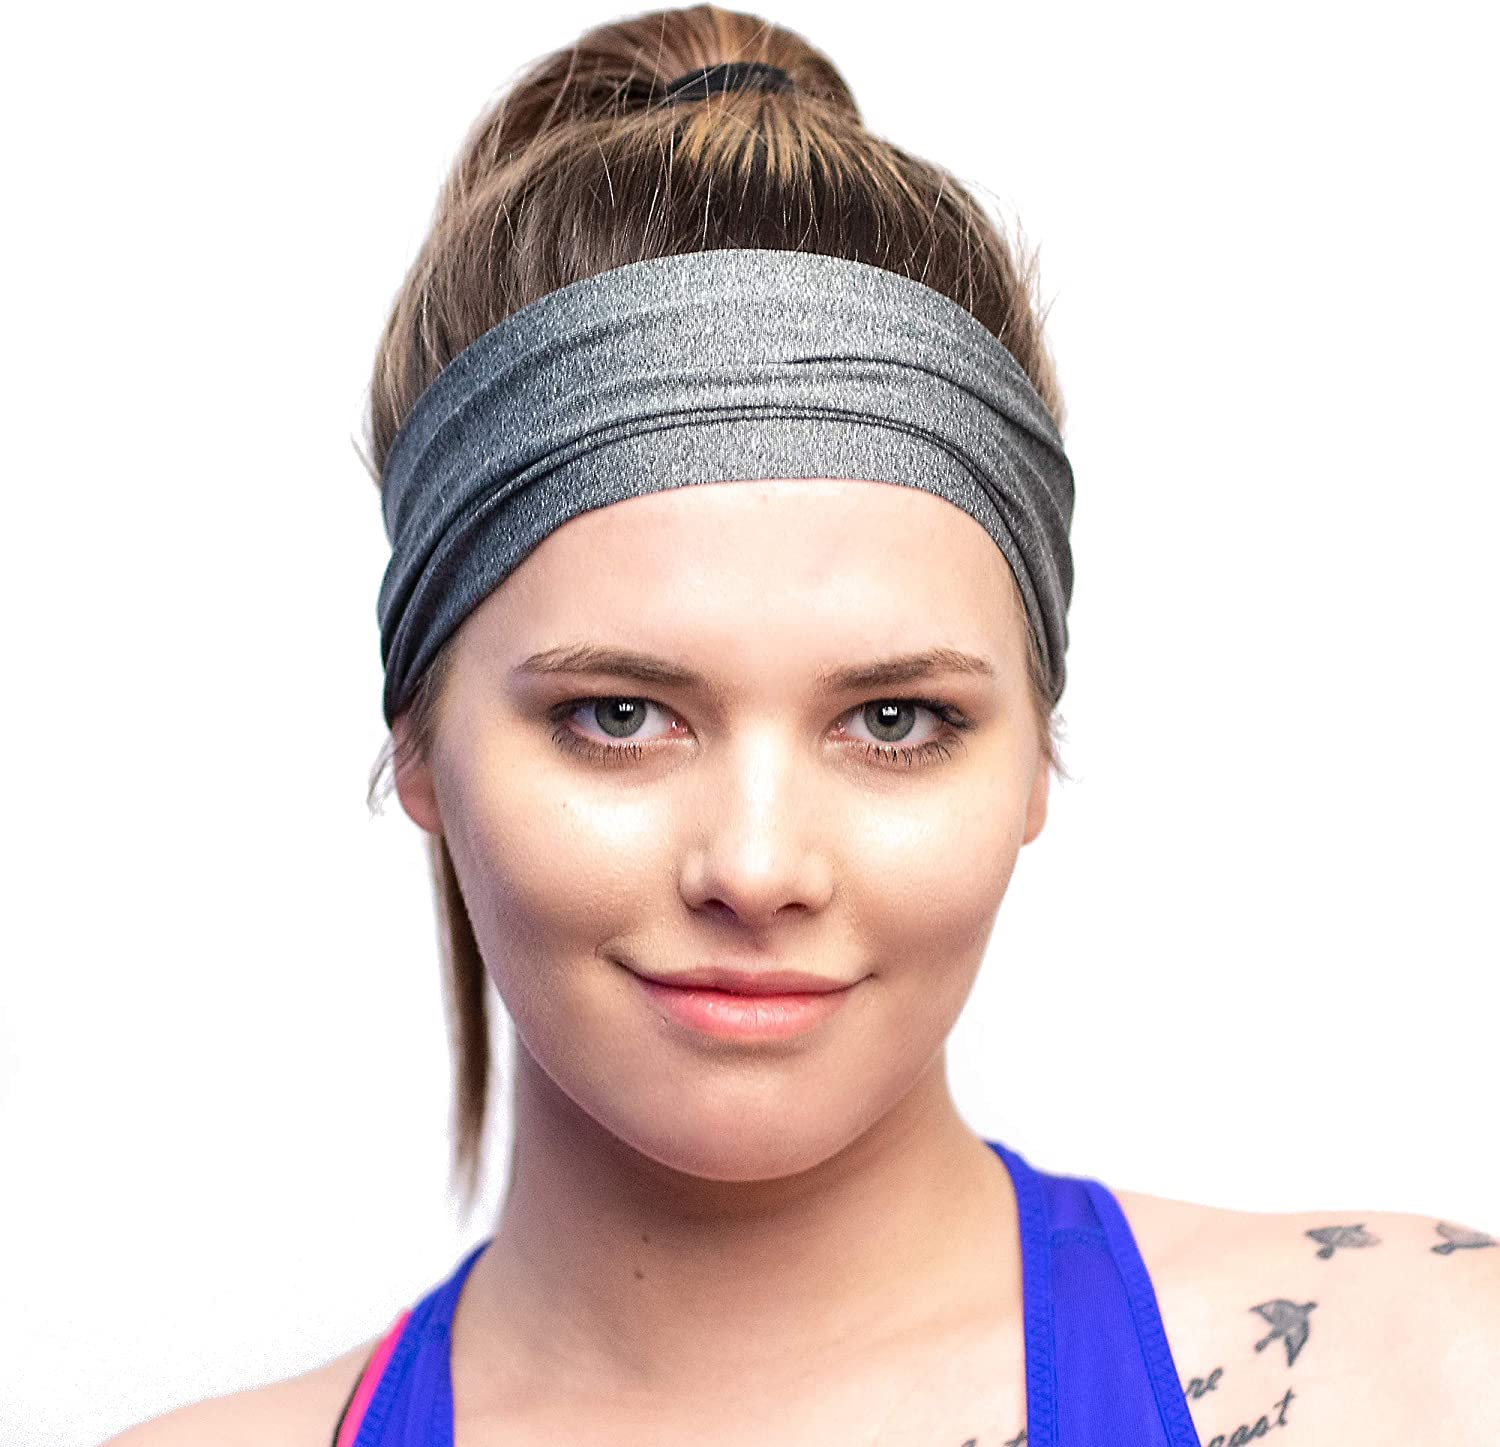 Red Dust Active Lightweight Sports Headband - Moisture Wicking Sweatband - Ideal for Running, Cycling, Yoga and Athletic Workouts